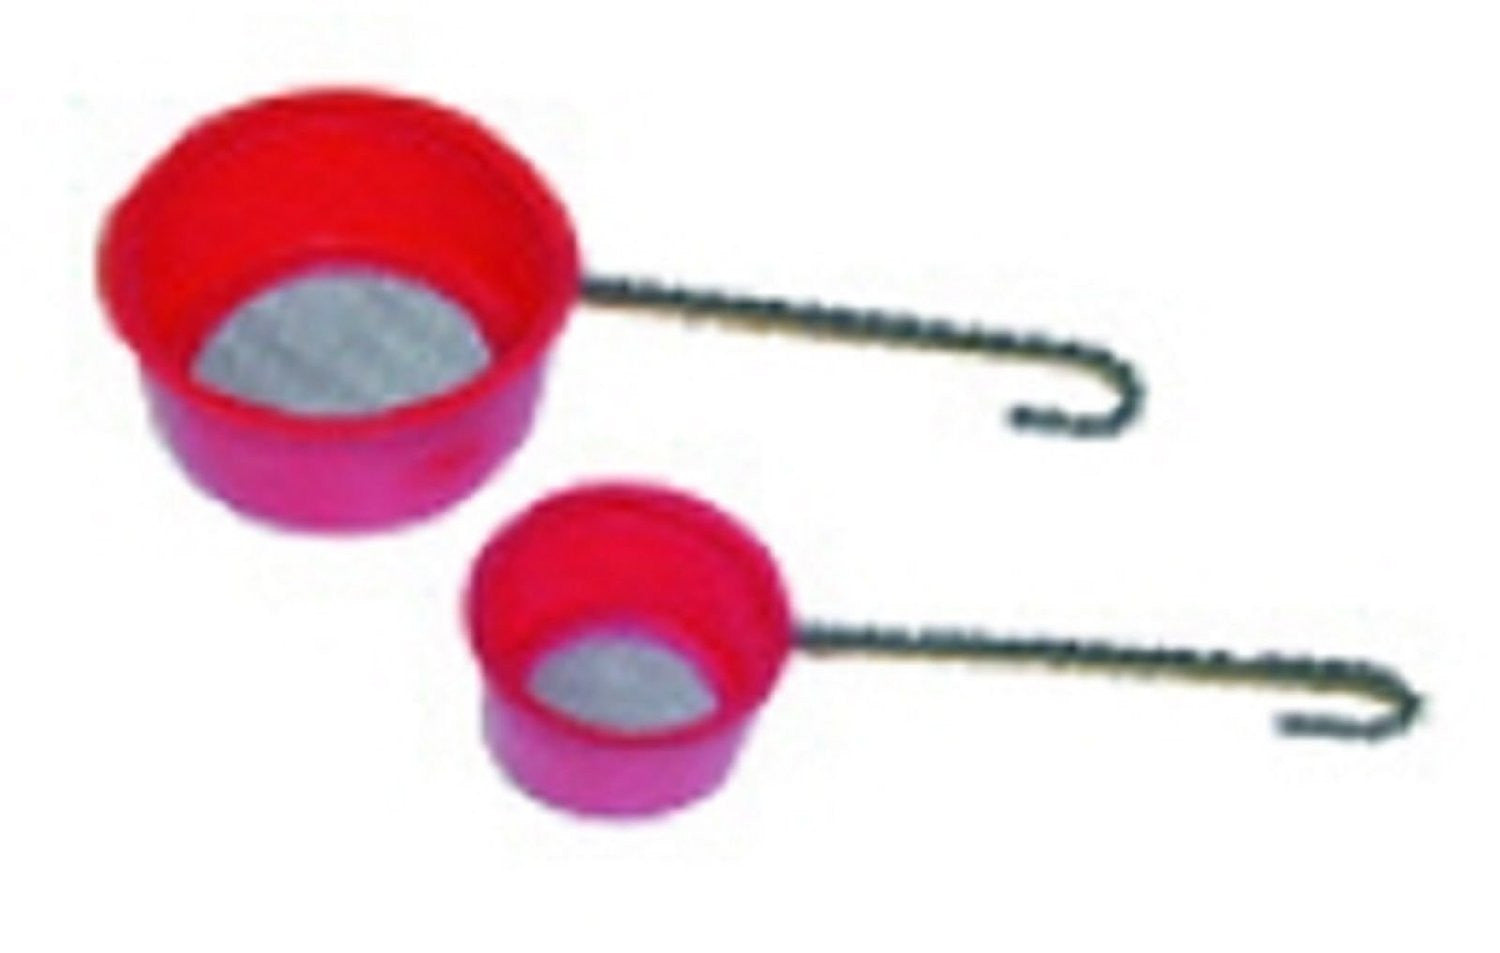 Glass Frit Sifter 2 Sizes Included